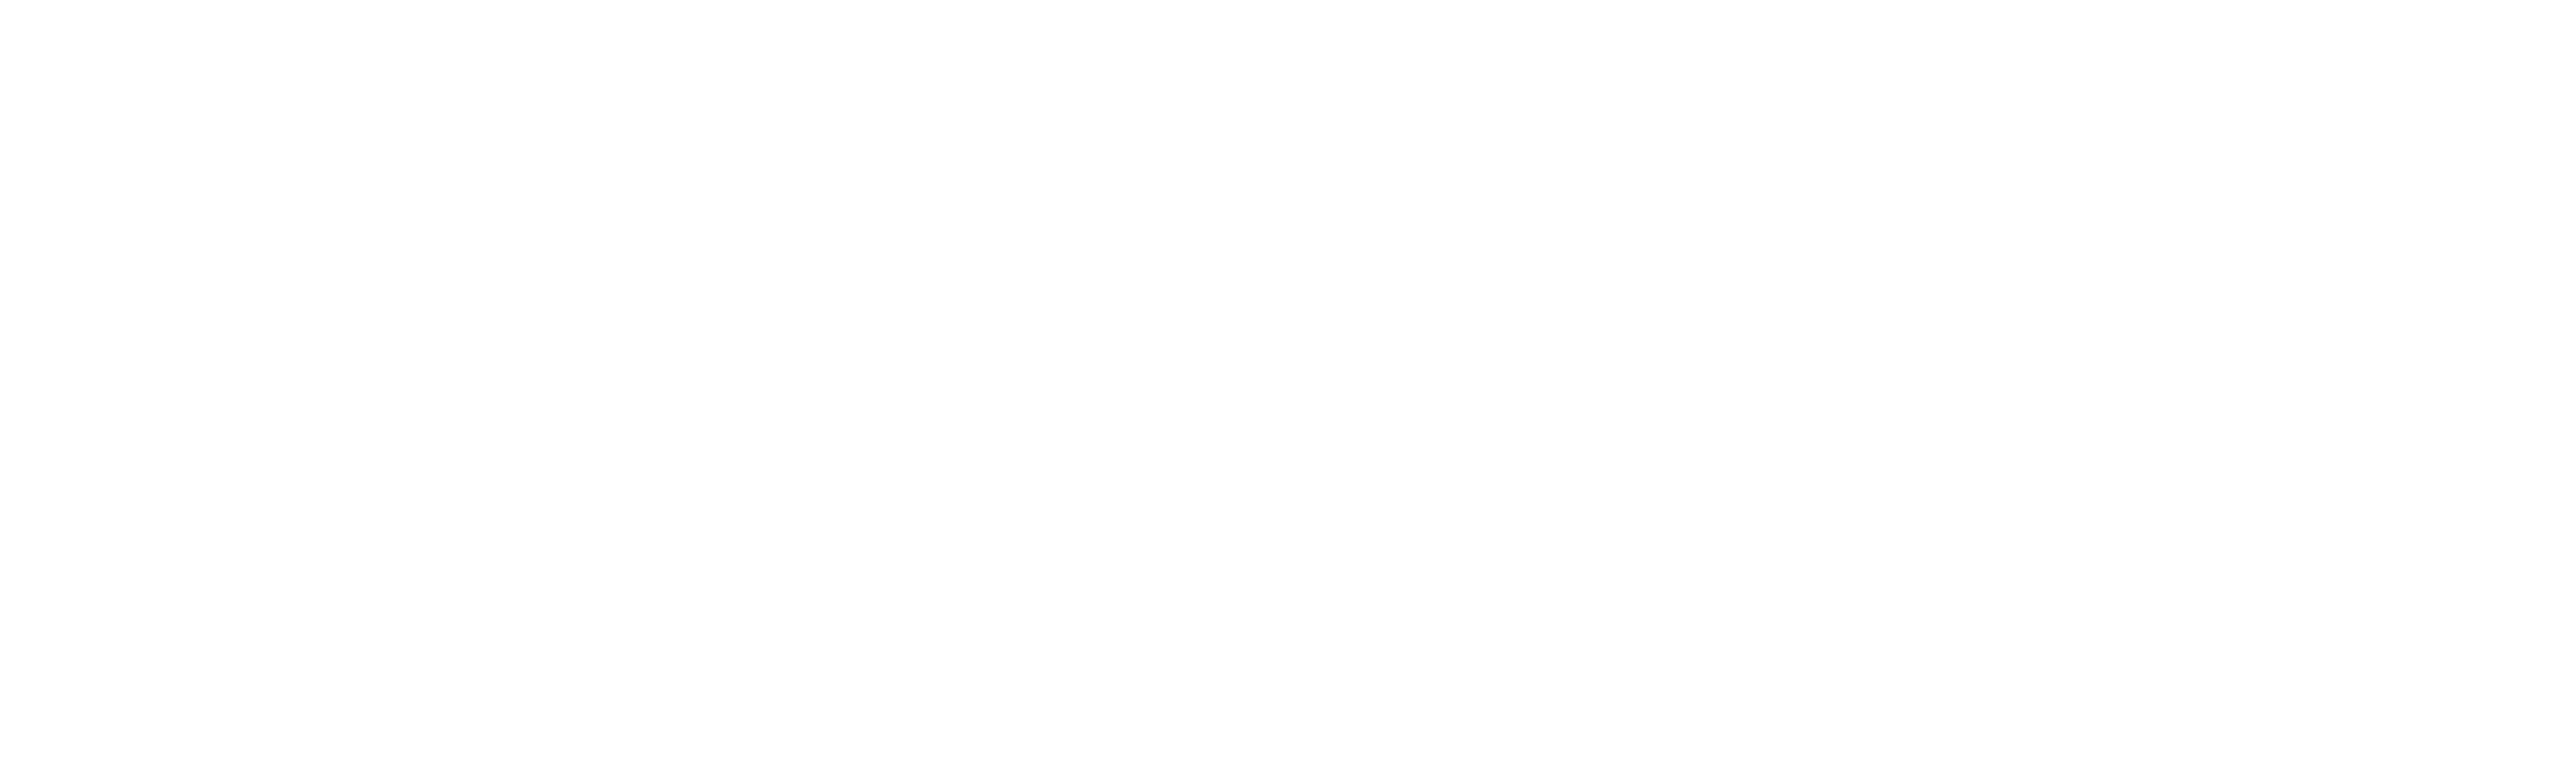 cegedim healthcare solution_logo white_-01-1